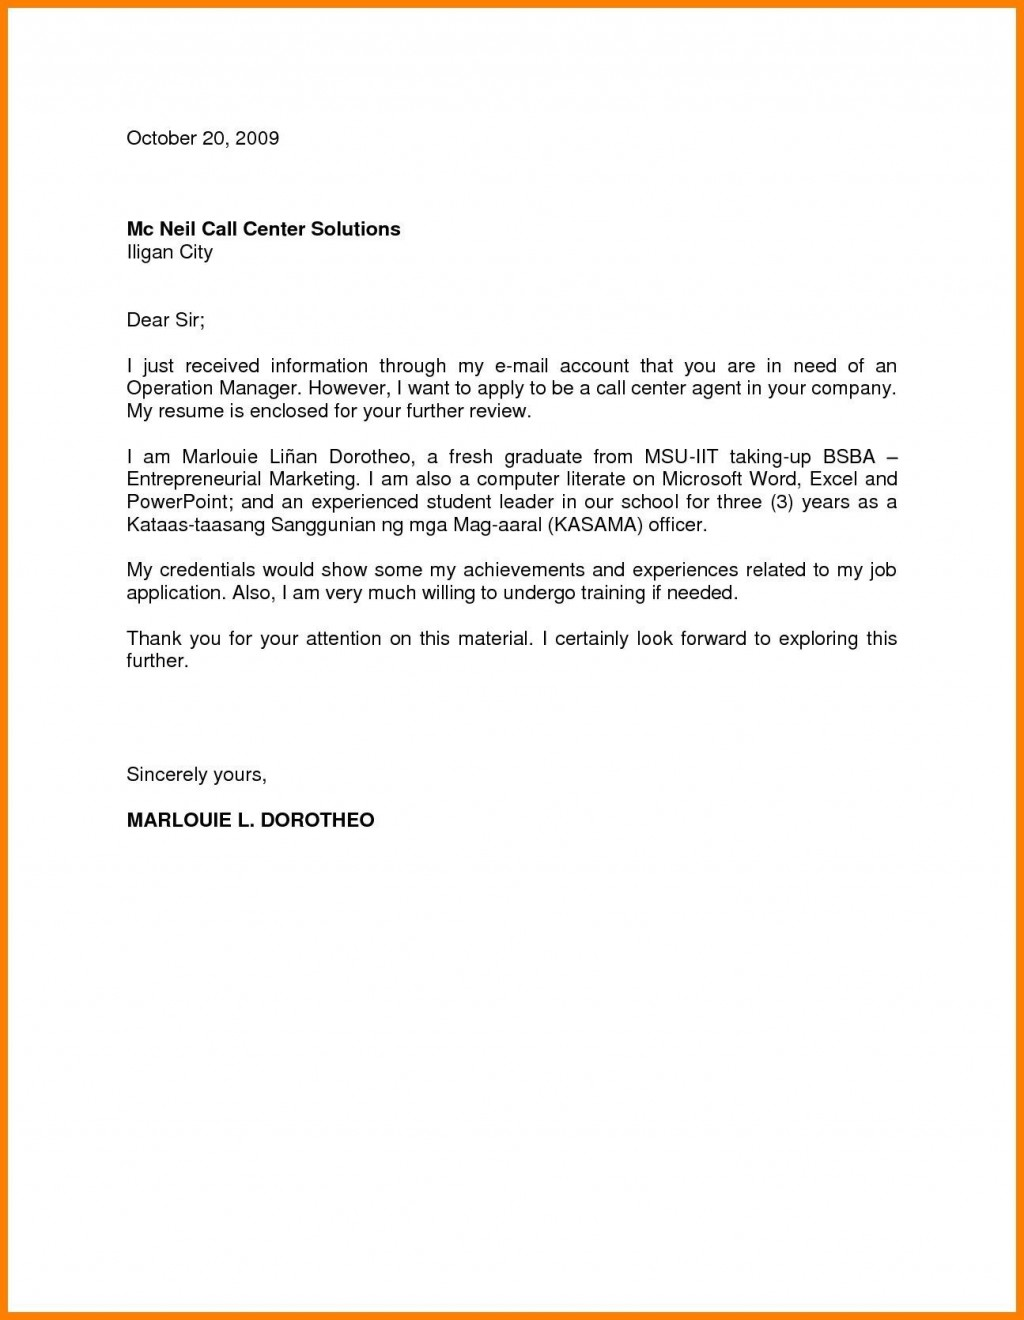 009 Simple Cover Letter Sample Template For Fresh Graduate In Marketing Photo Large